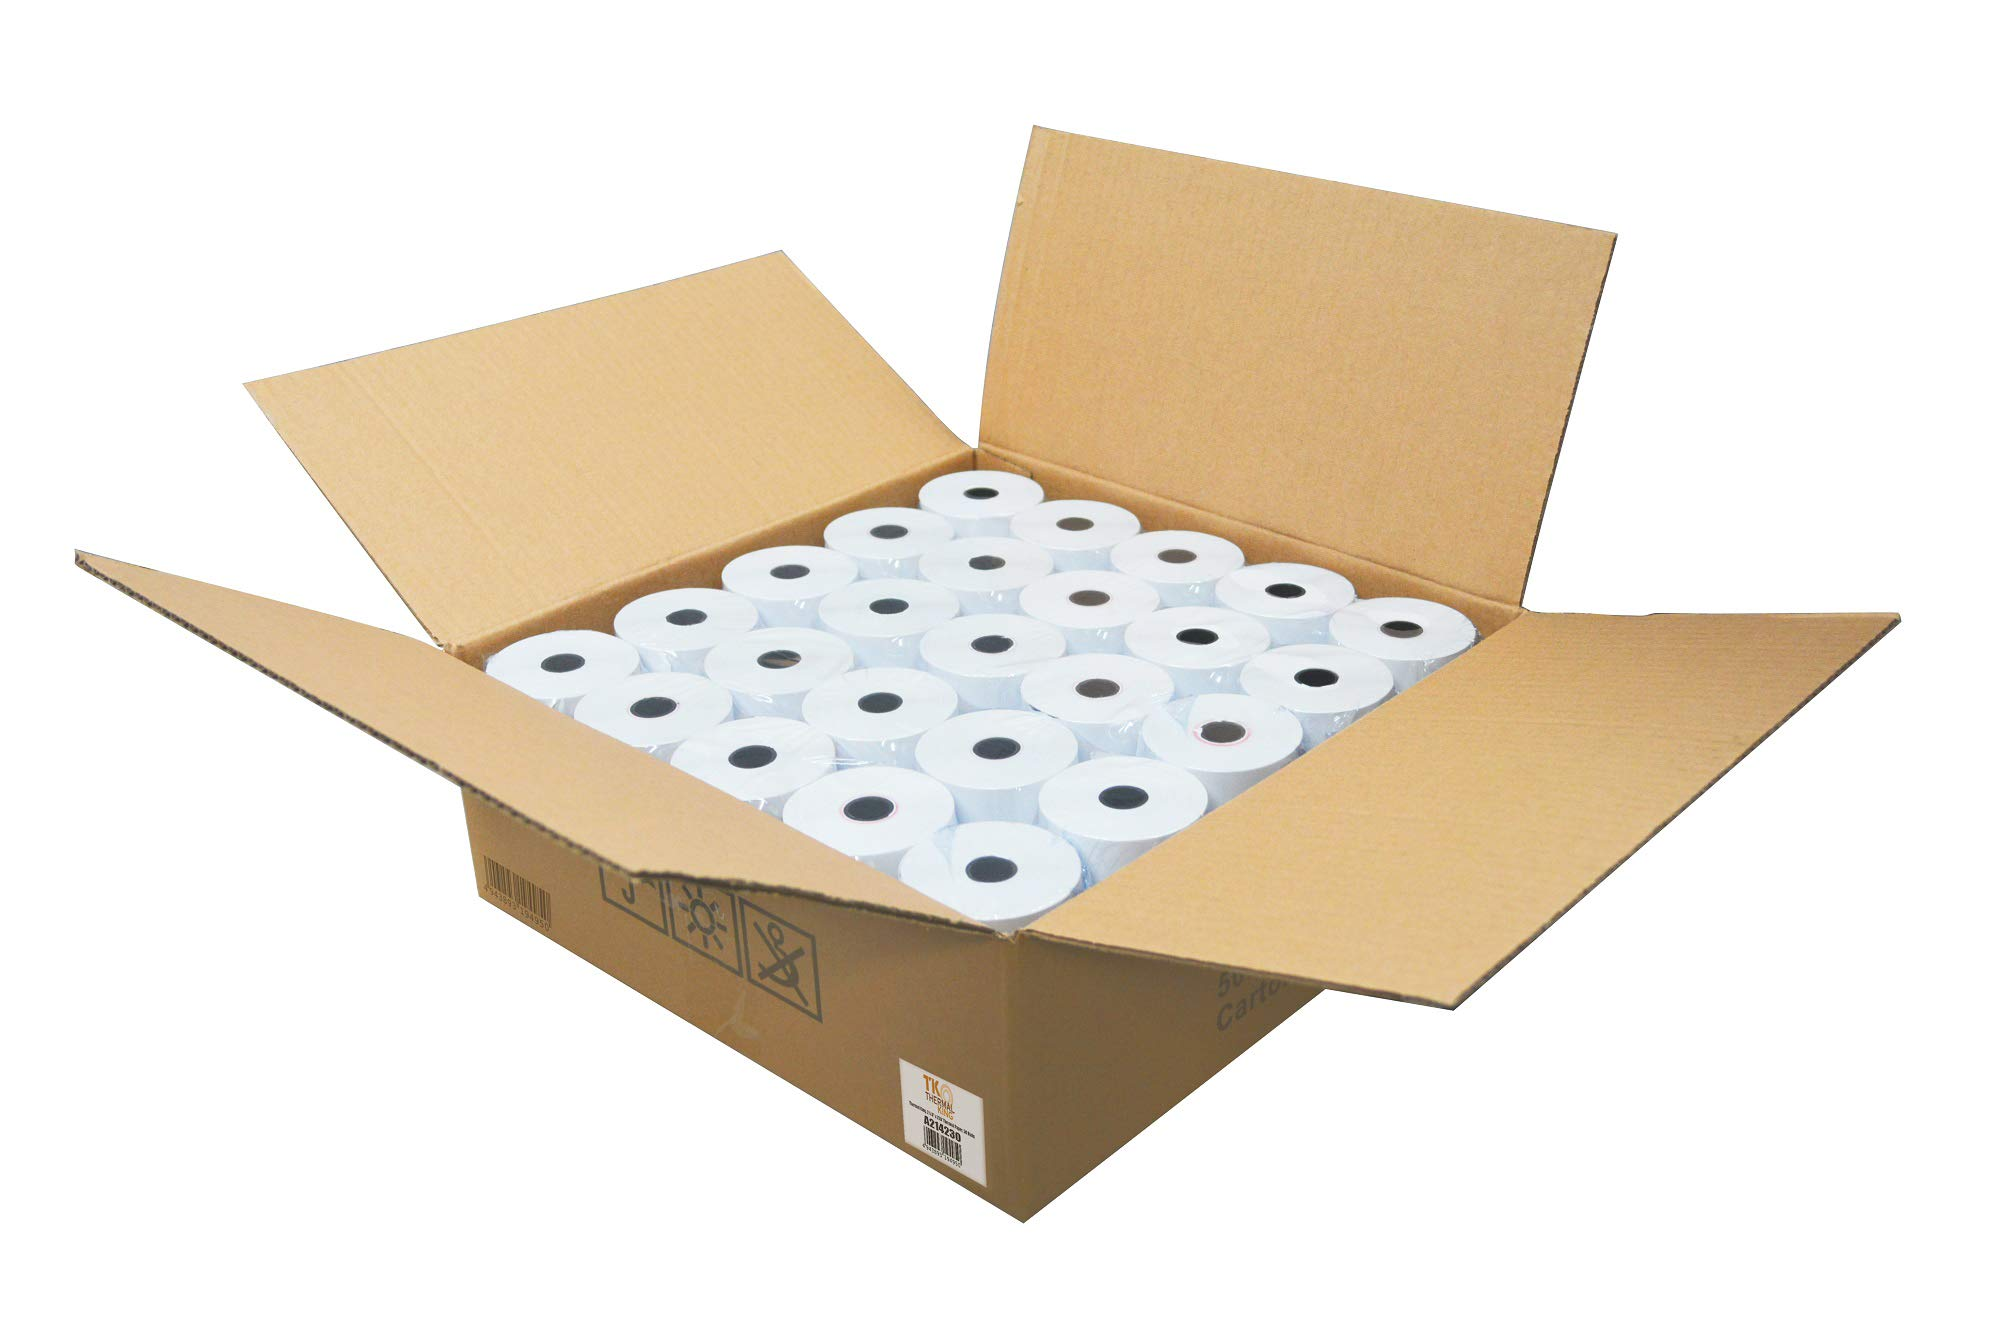 Thermal King, 2 1/4'' x 230' Thermal Paper, 50 Rolls [Thermal King Brand] by Thermal King (Image #2)